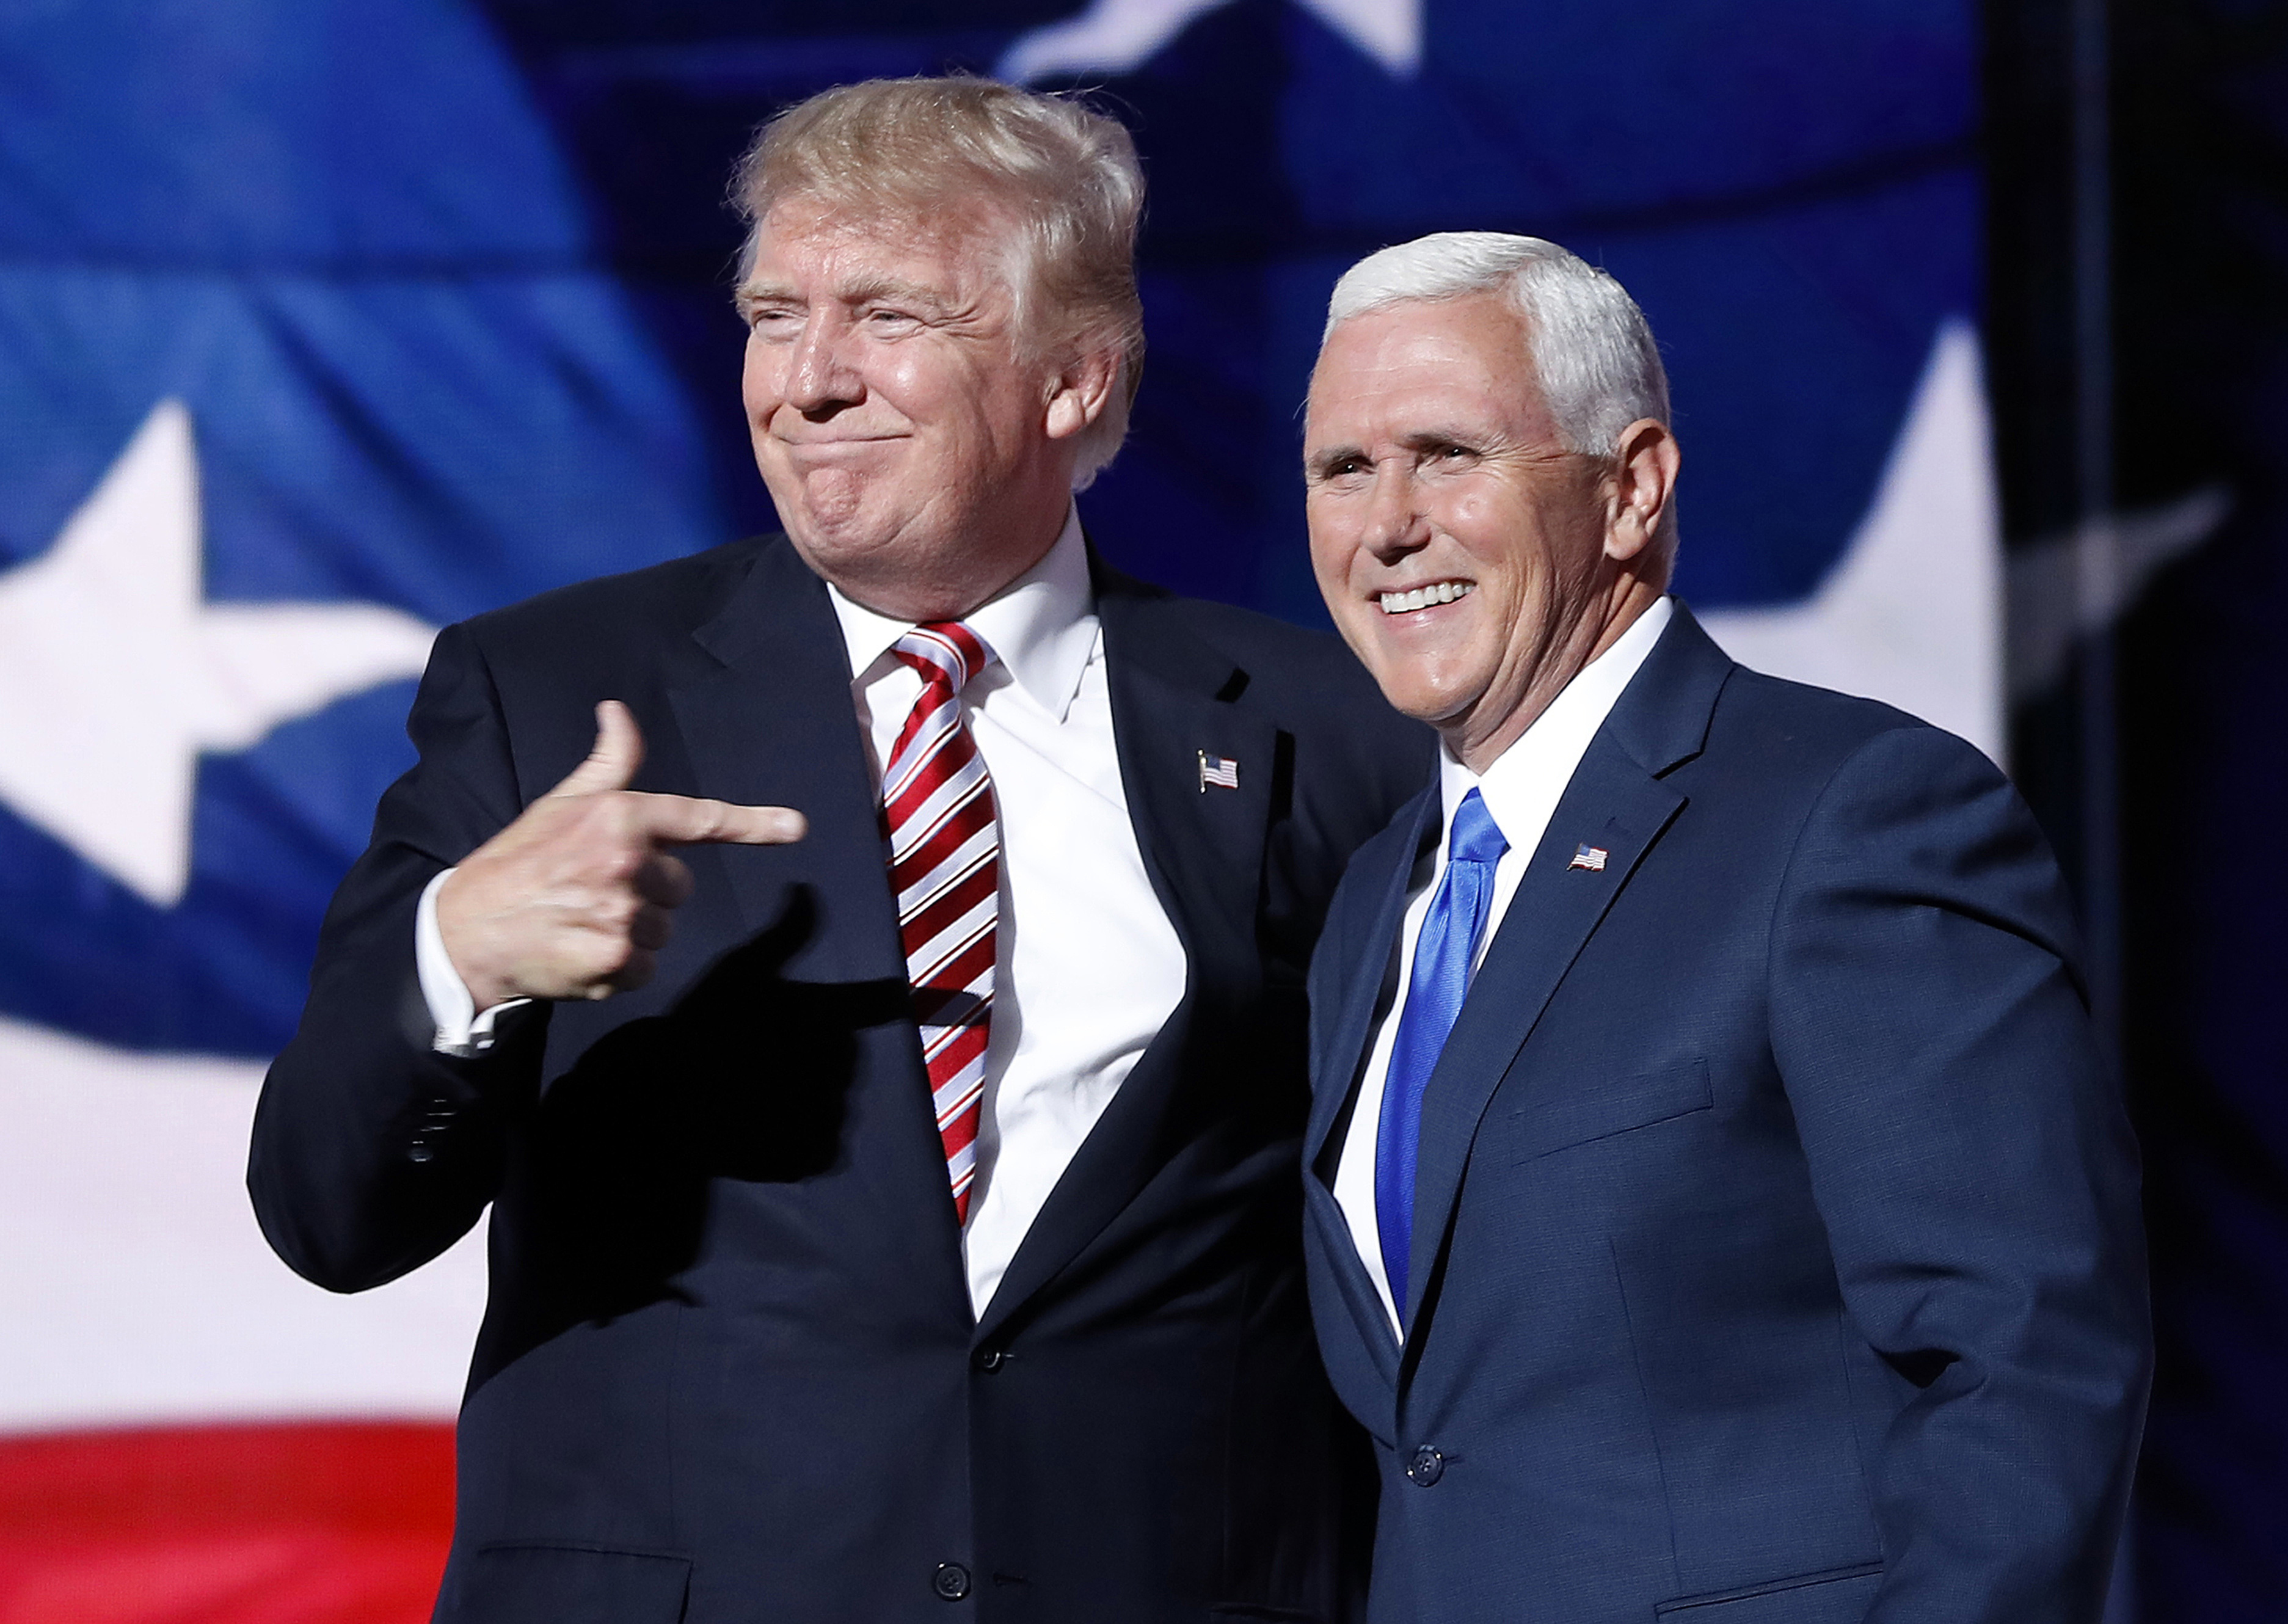 Donald Trump Throws Running Mate Mike Pence Under The